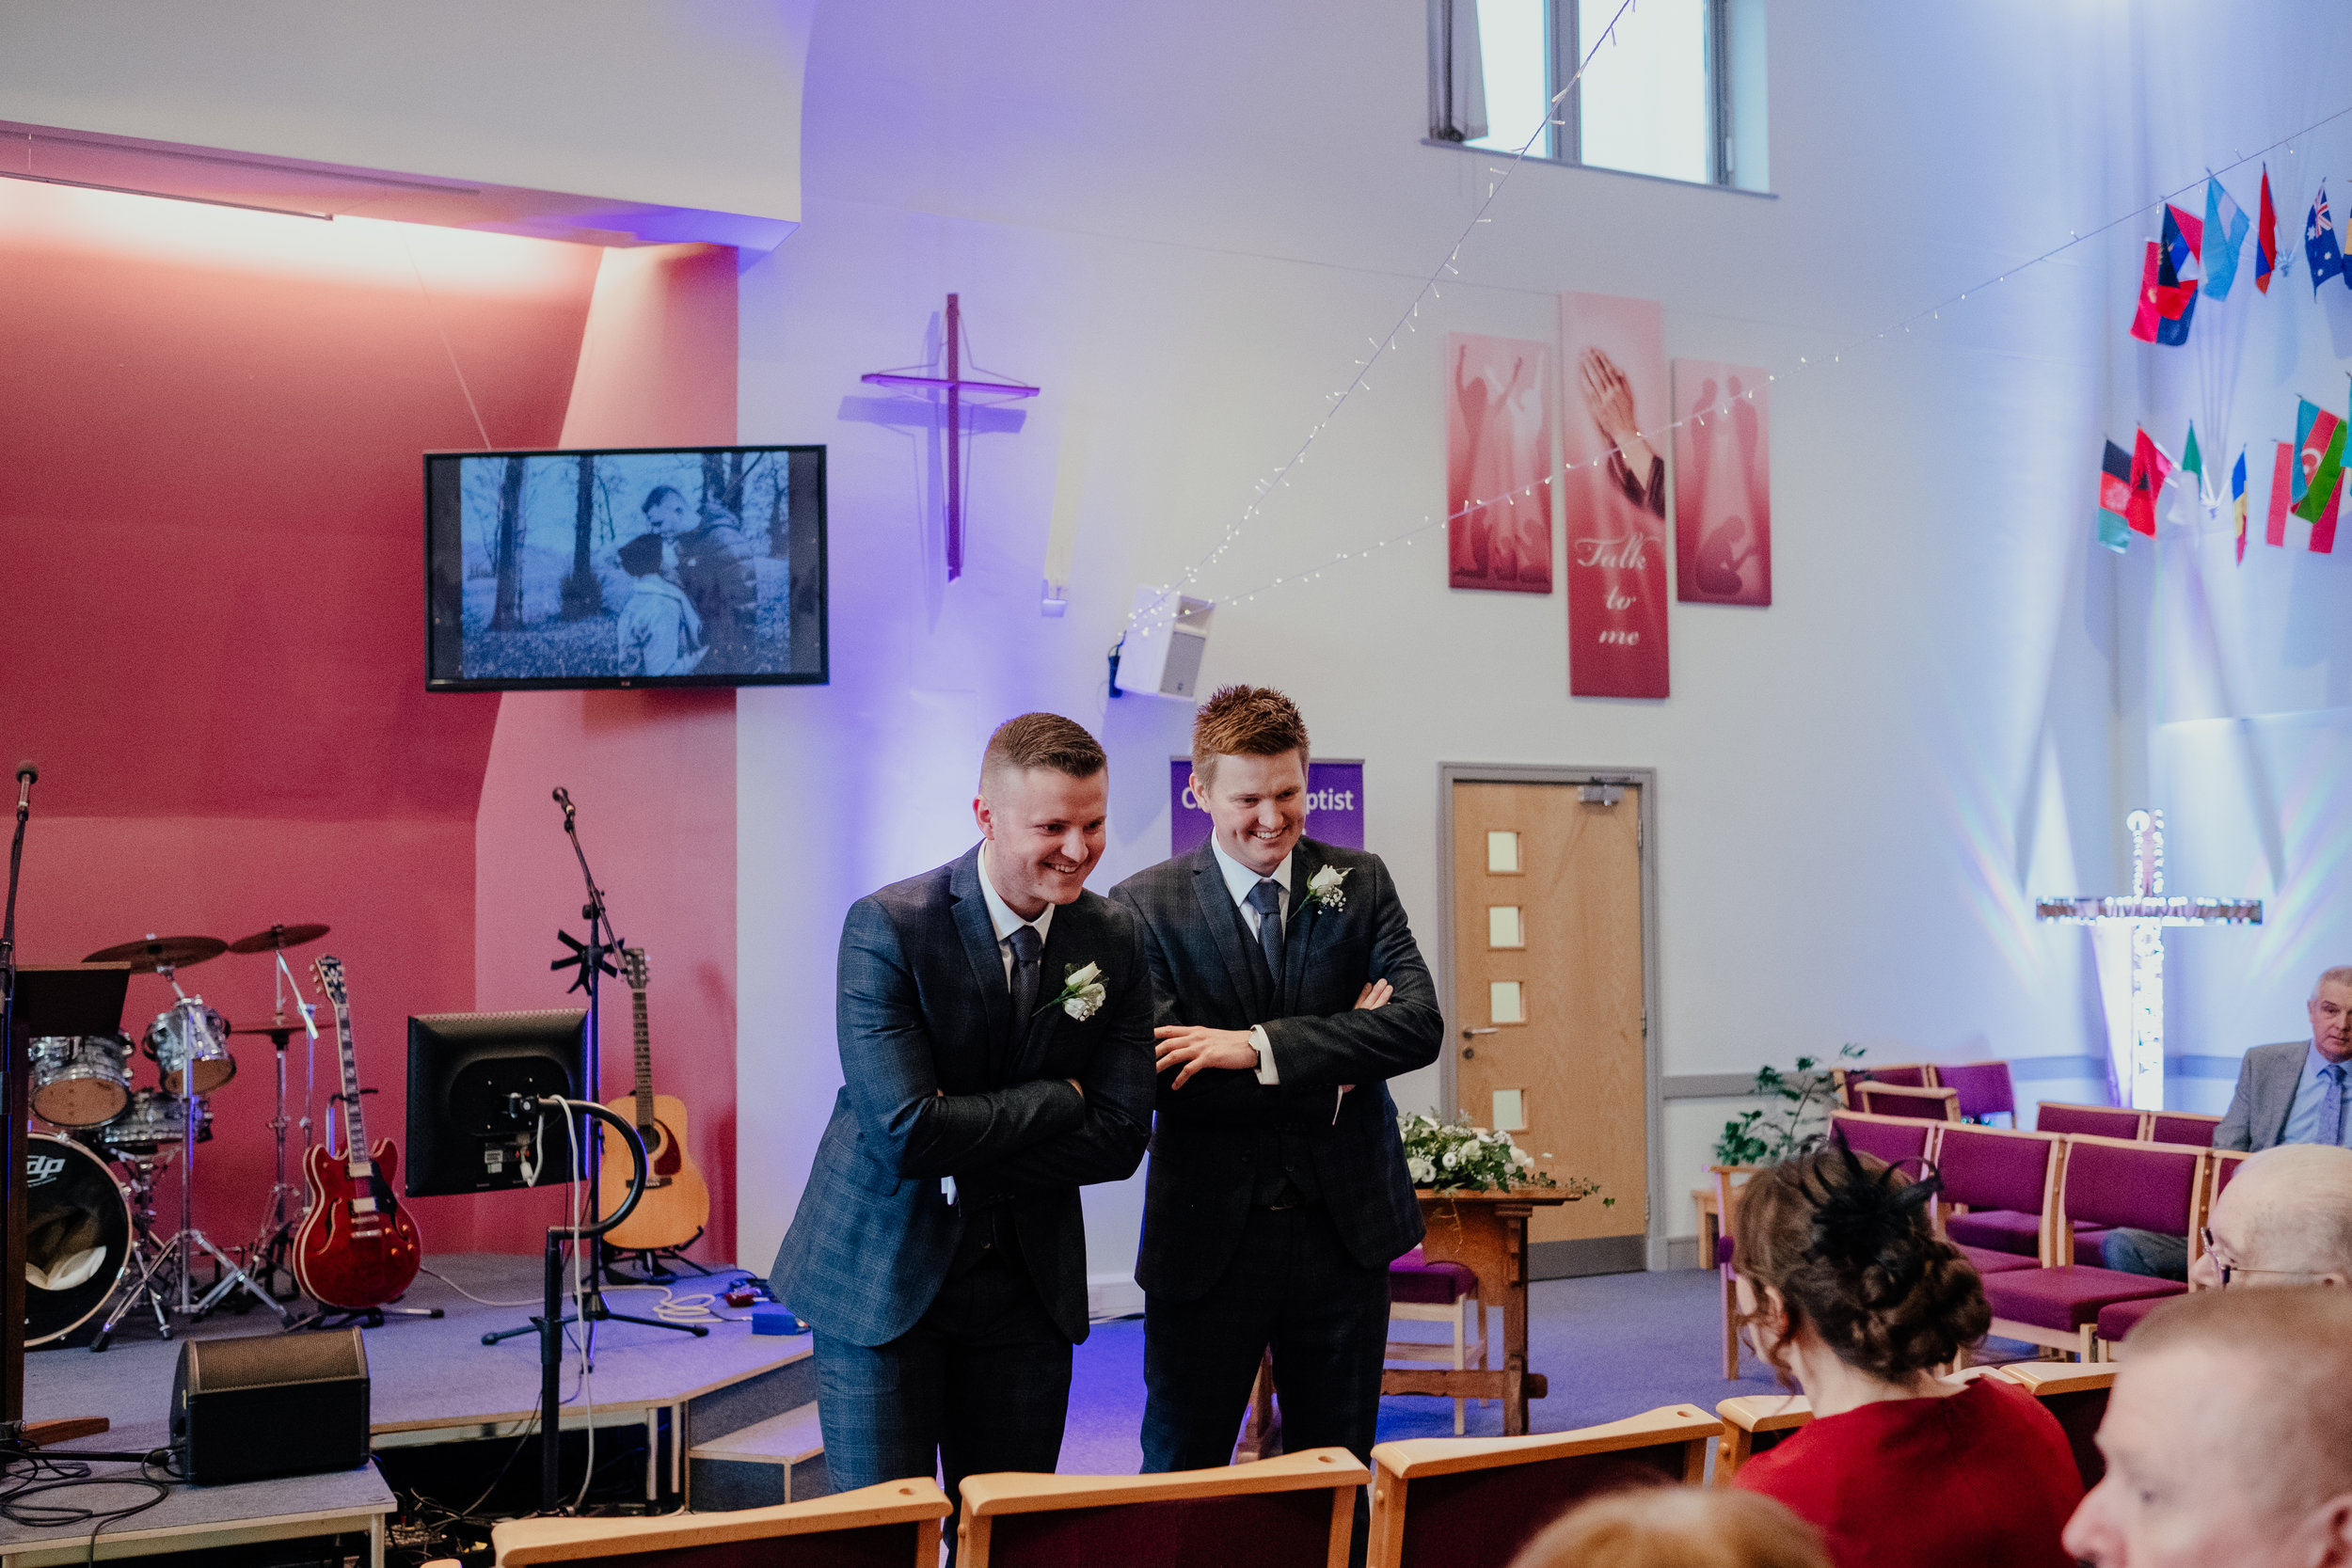 Groom and Best Man wait at church for bride to arrive